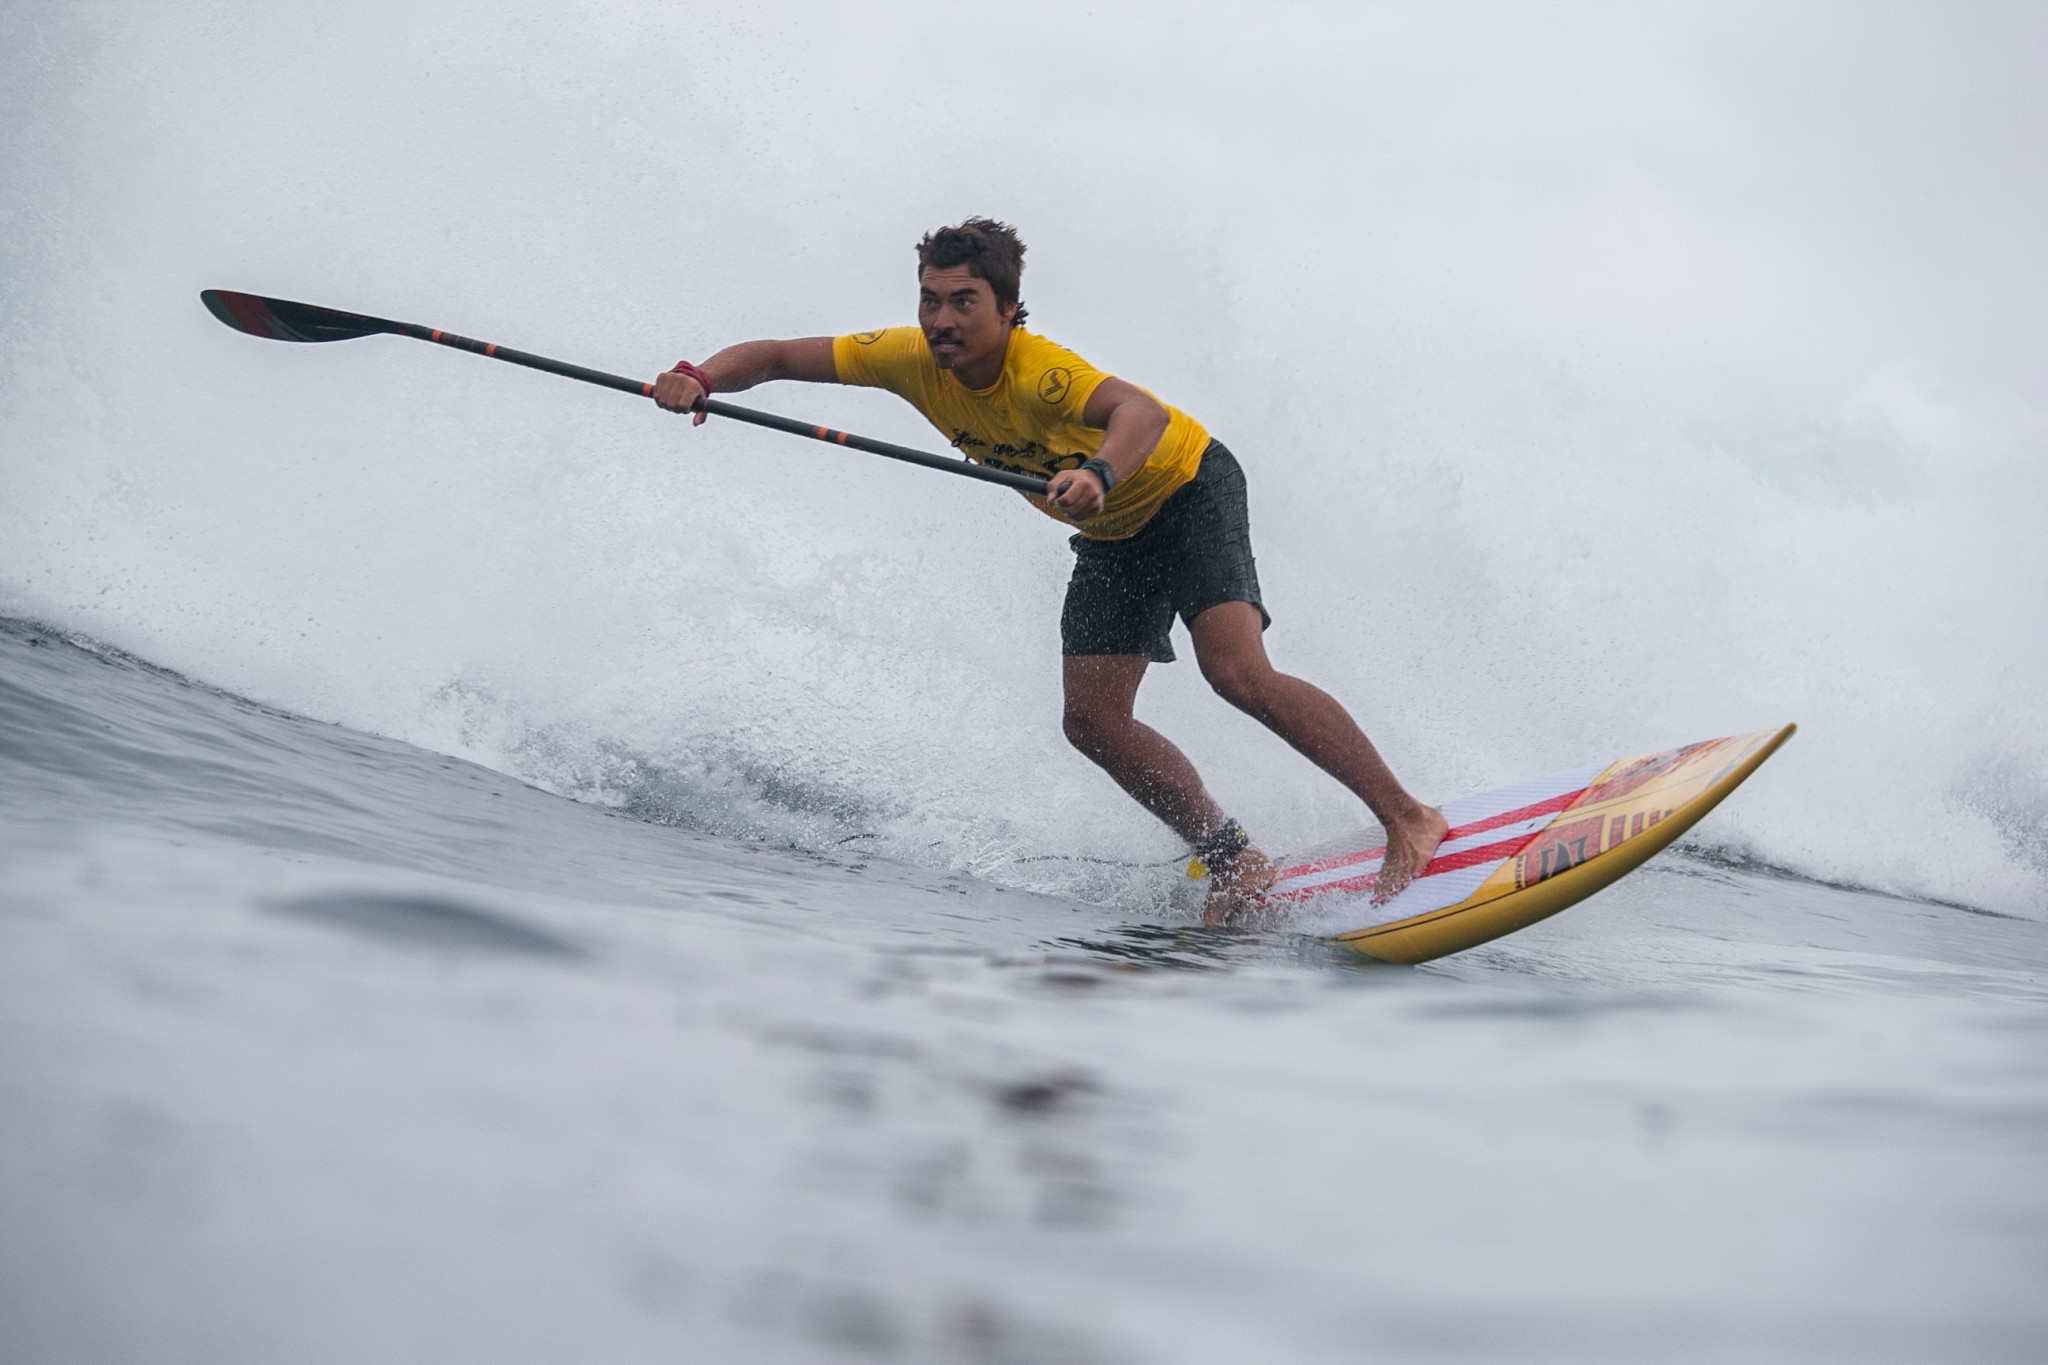 The International Surfing Association has reiterated their view that they are the only world governing body with the right to host international SUP events ©Getty Images